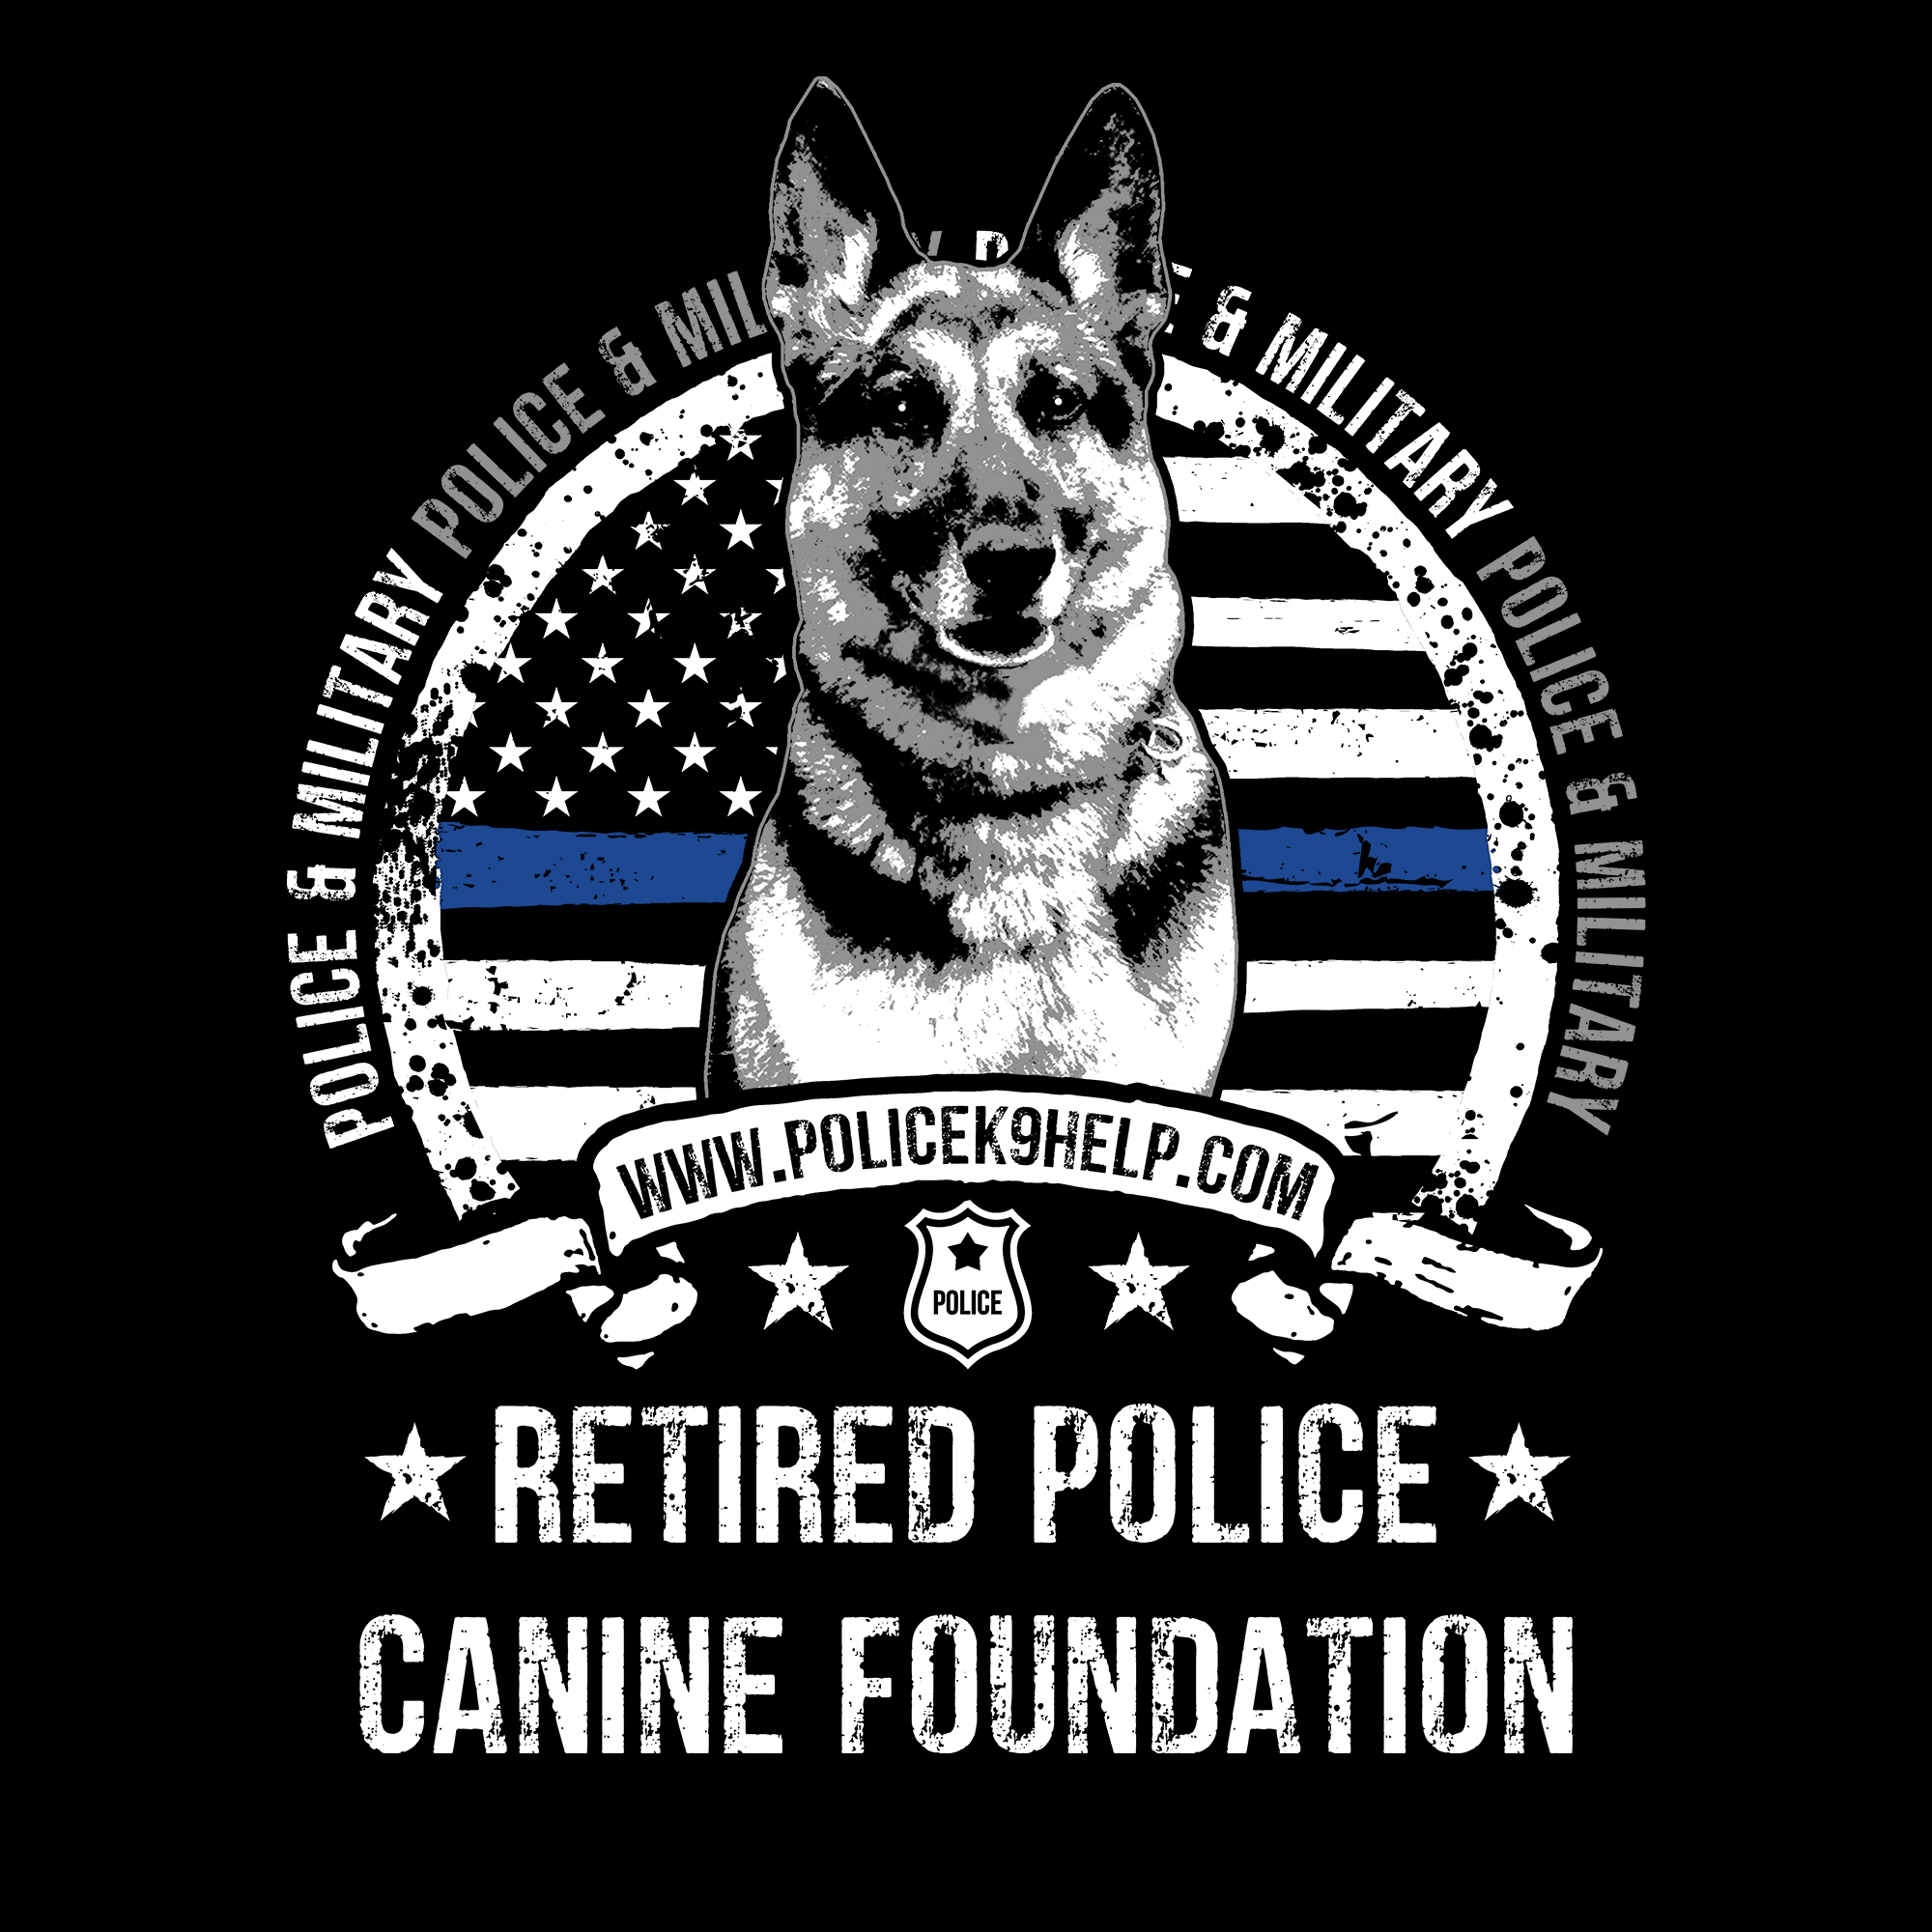 Retired Police Canine Foundation